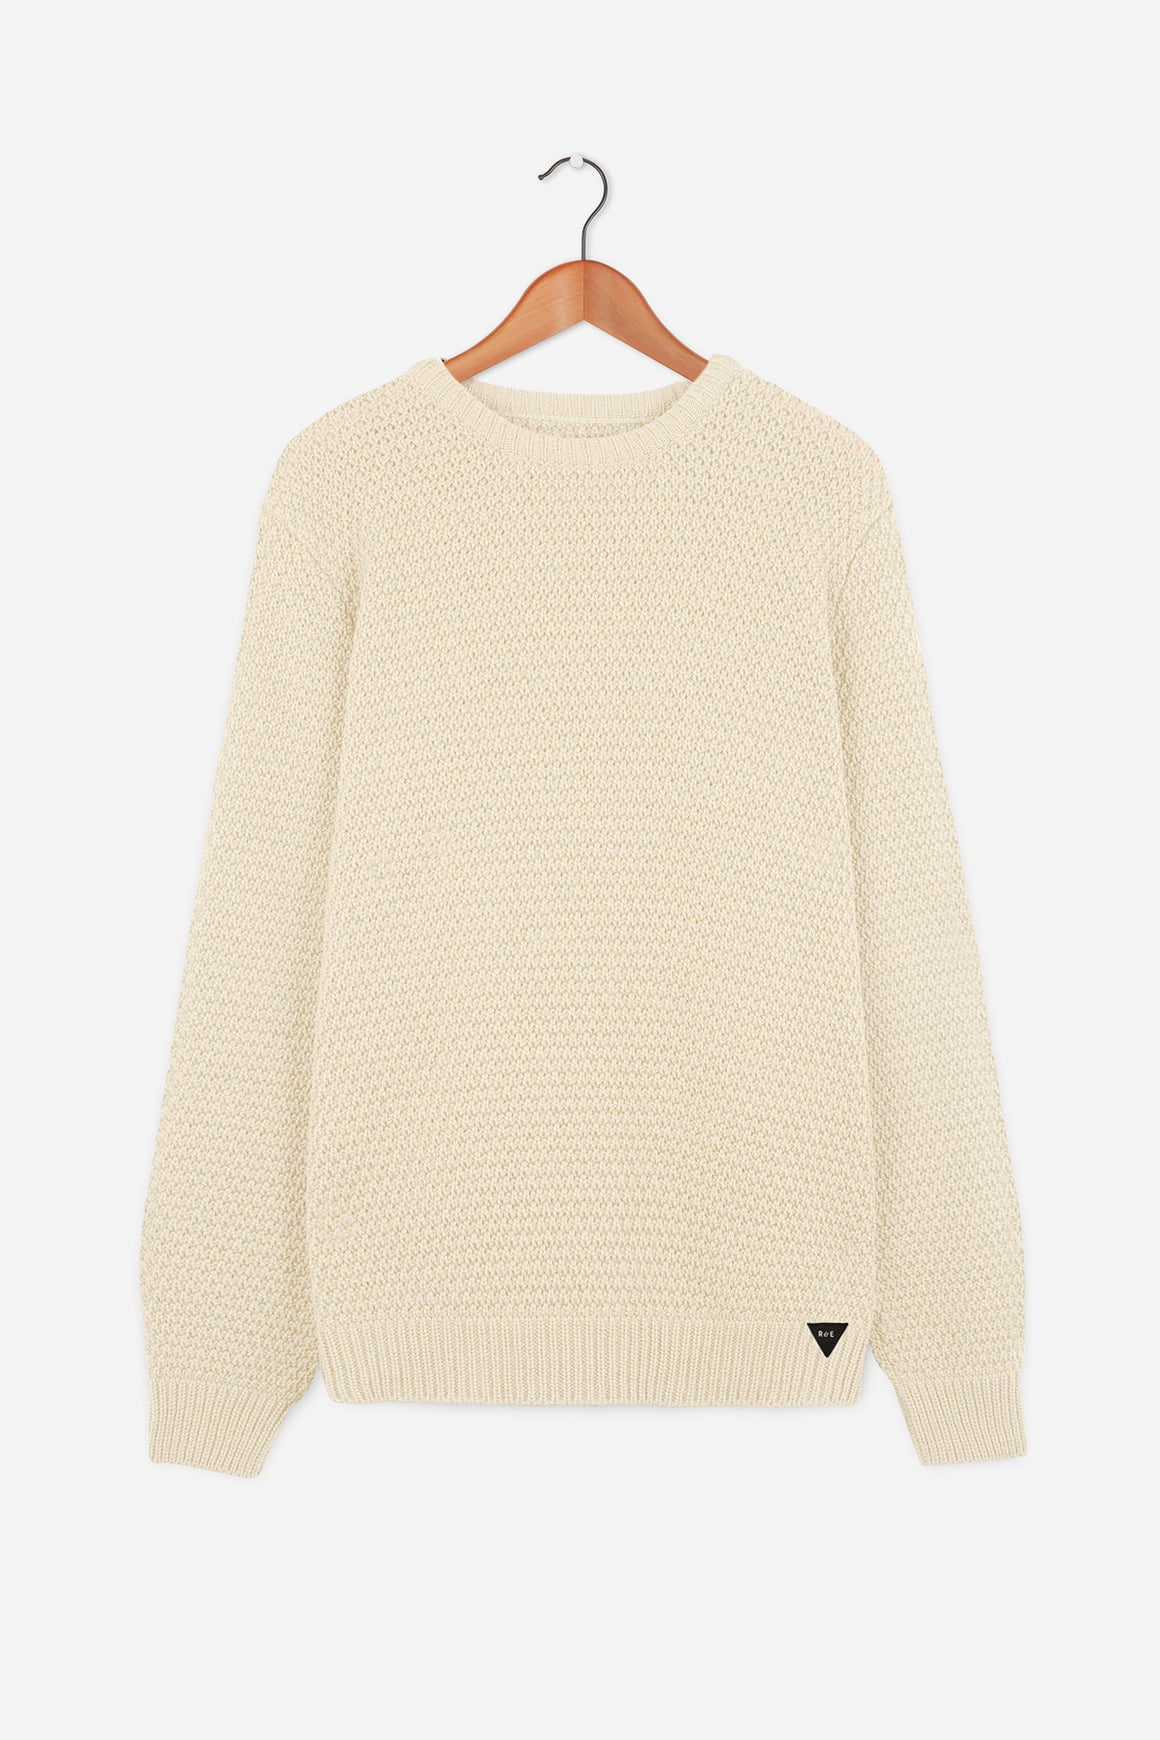 Men's Cream British Wool  Moss-Stitch Jumper | Made in England | Classic Cardigan | Realm & Empire